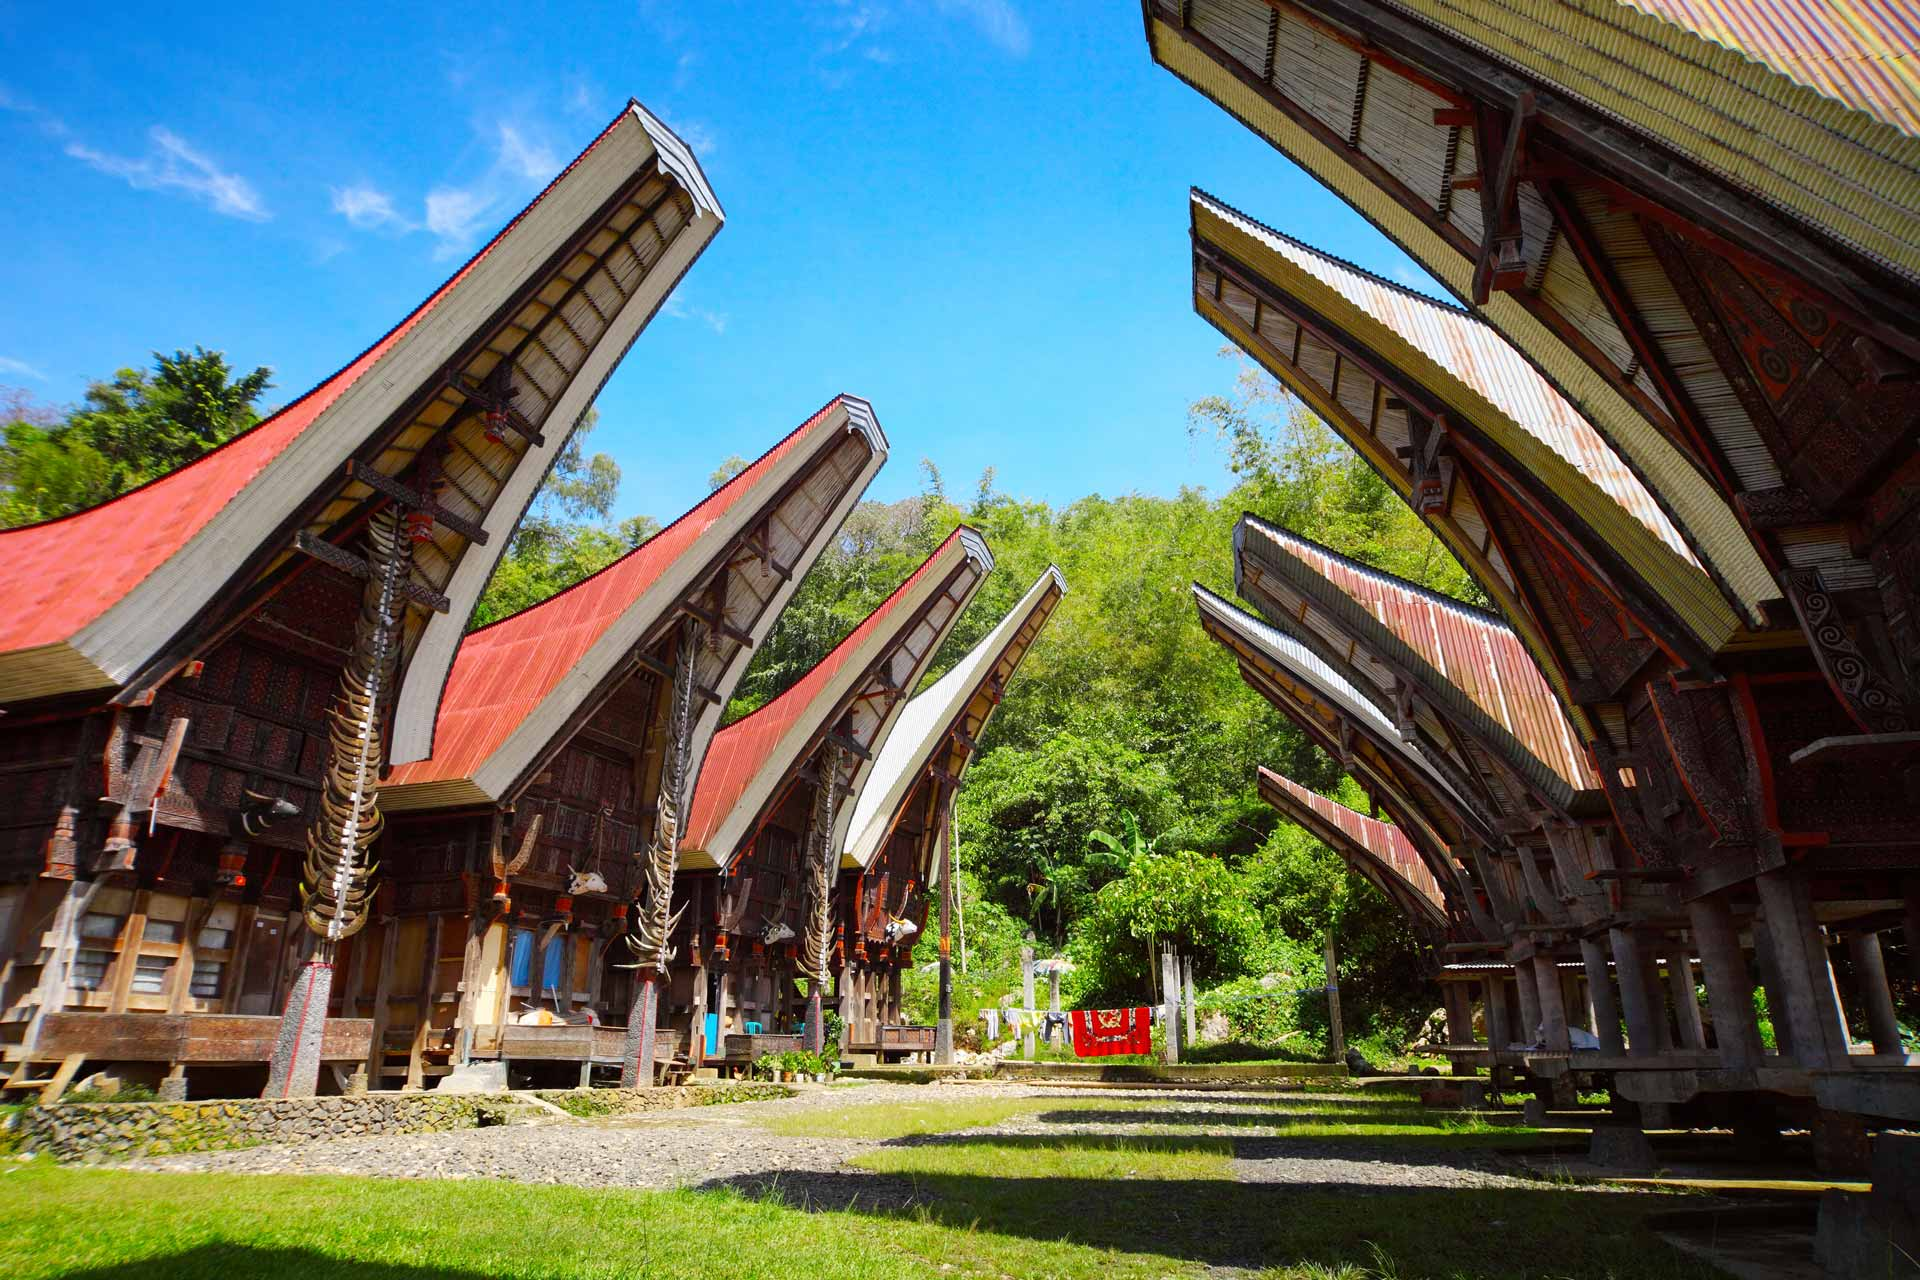 Traditional homes of the Toraja's people on Sulawesi island. Indonesia